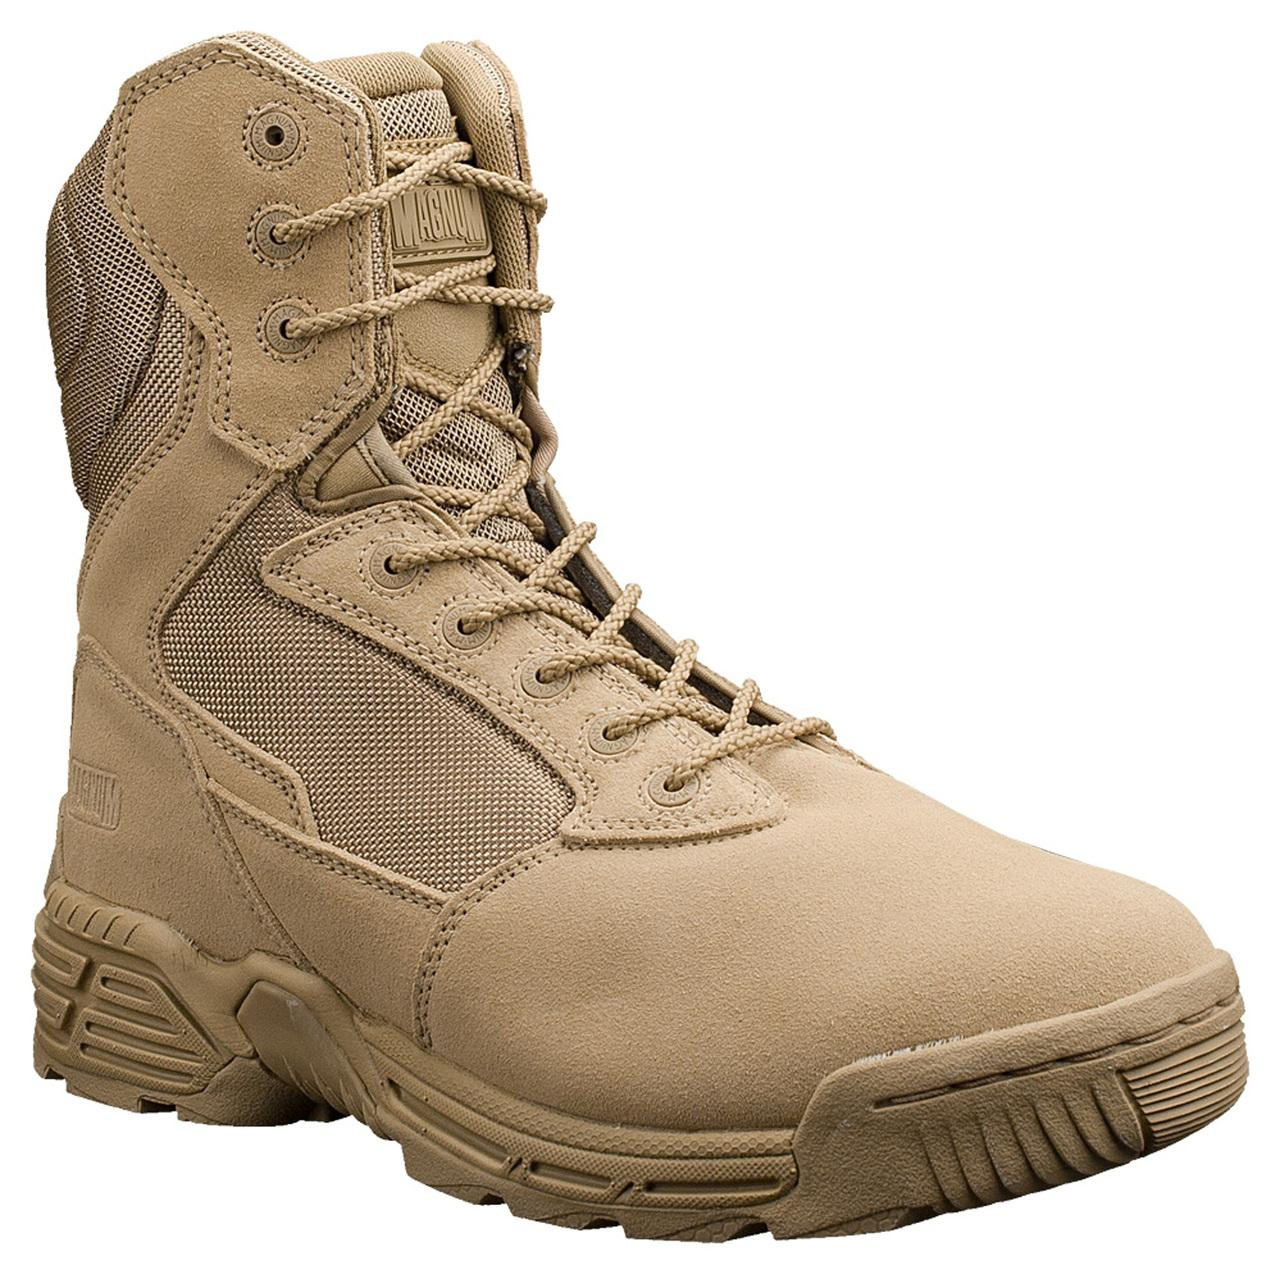 Men's Stealth Force 8.0 Boot